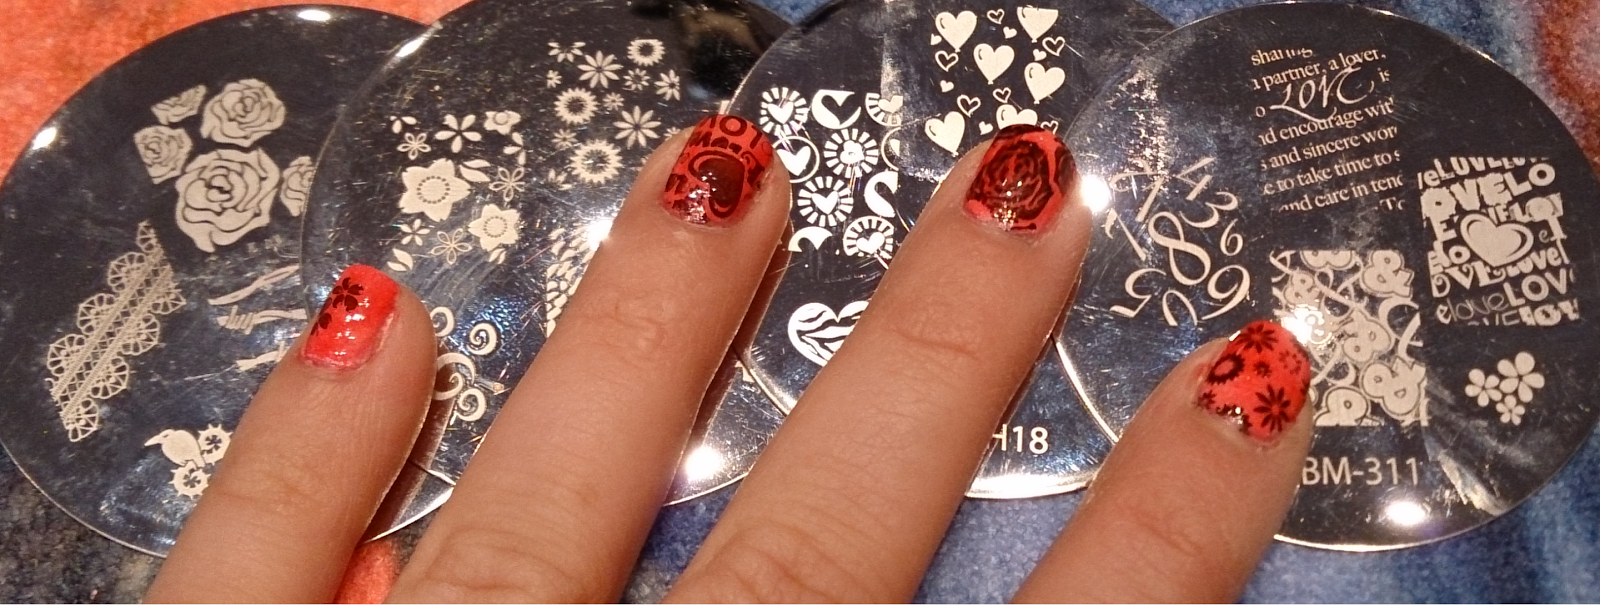 valentines day love romance romantic pink red nail design art nails stamping bundle monster plates